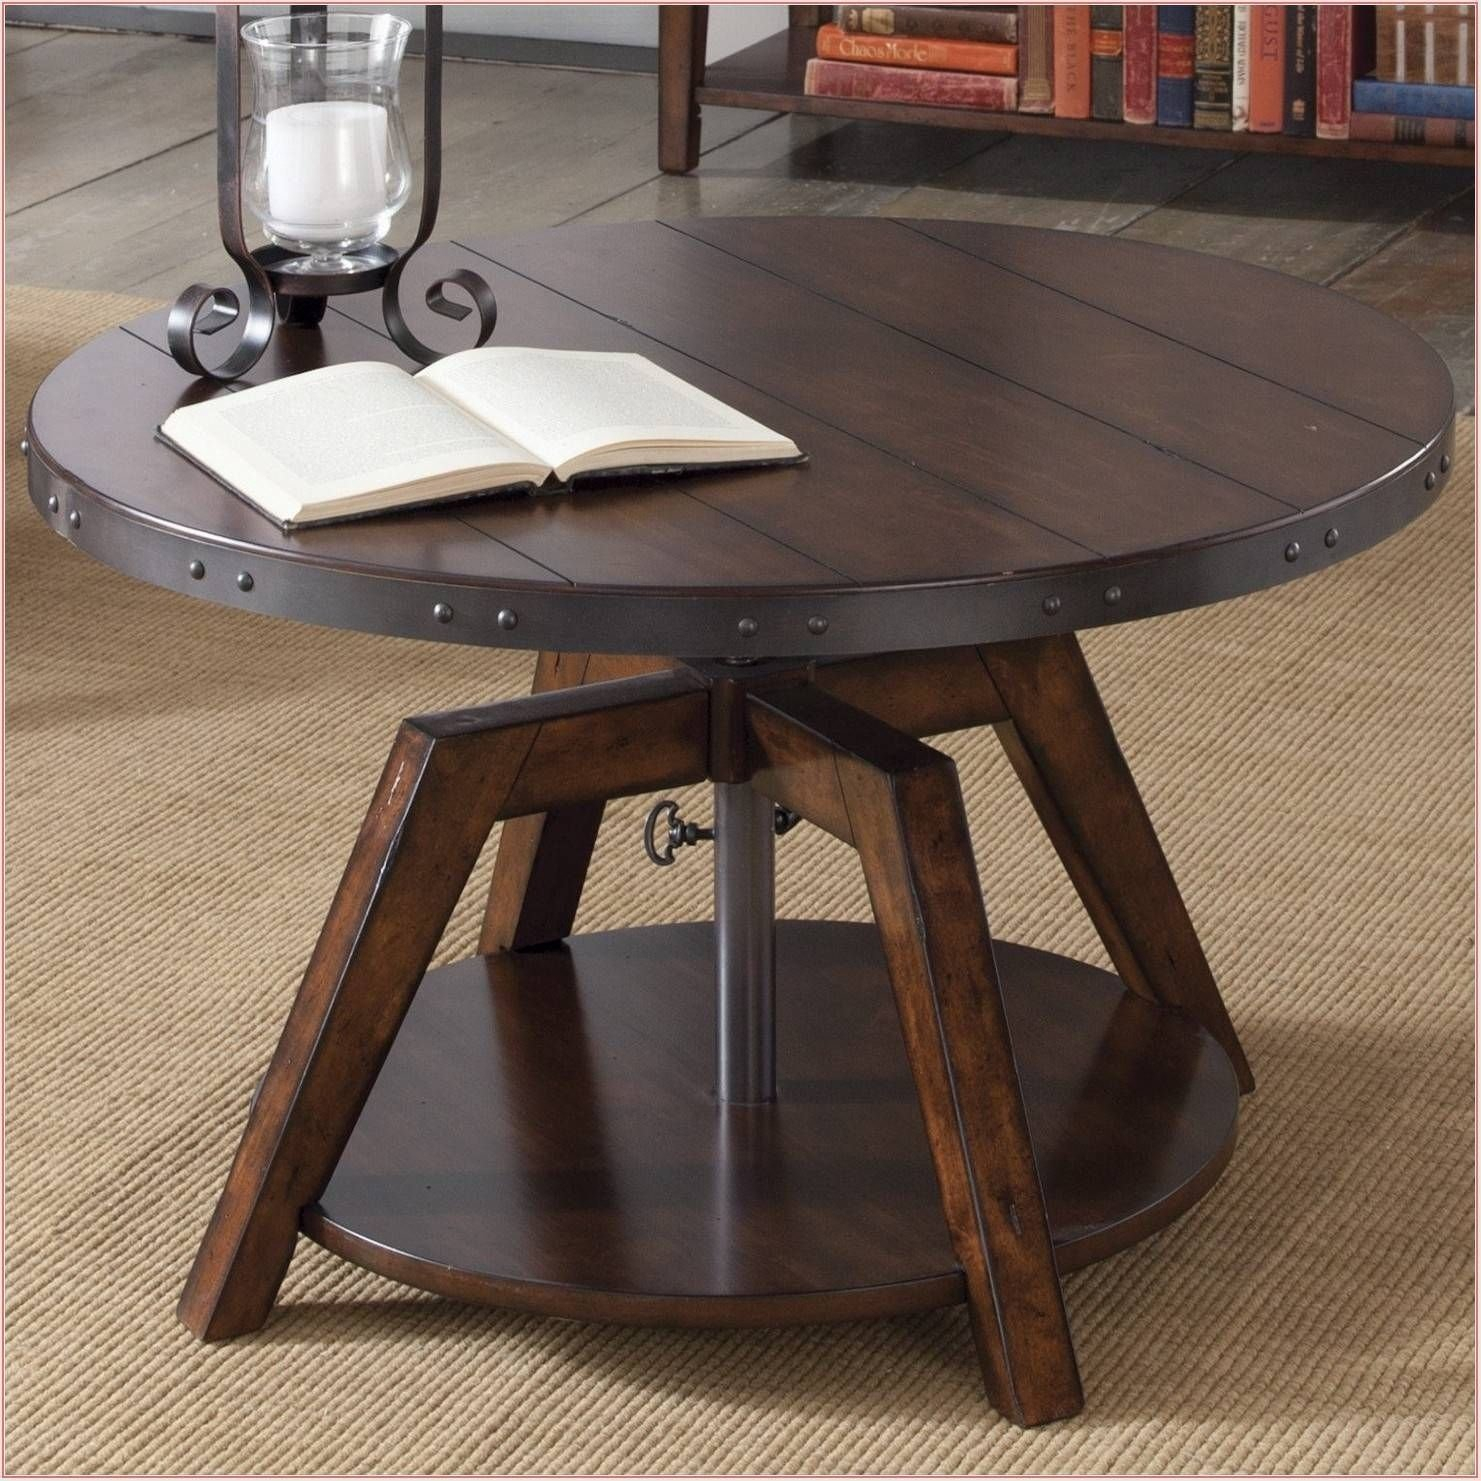 50 Amazing Convertible Coffee Table To Dining Table Up To 70 Off intended for size 1481 X 1481